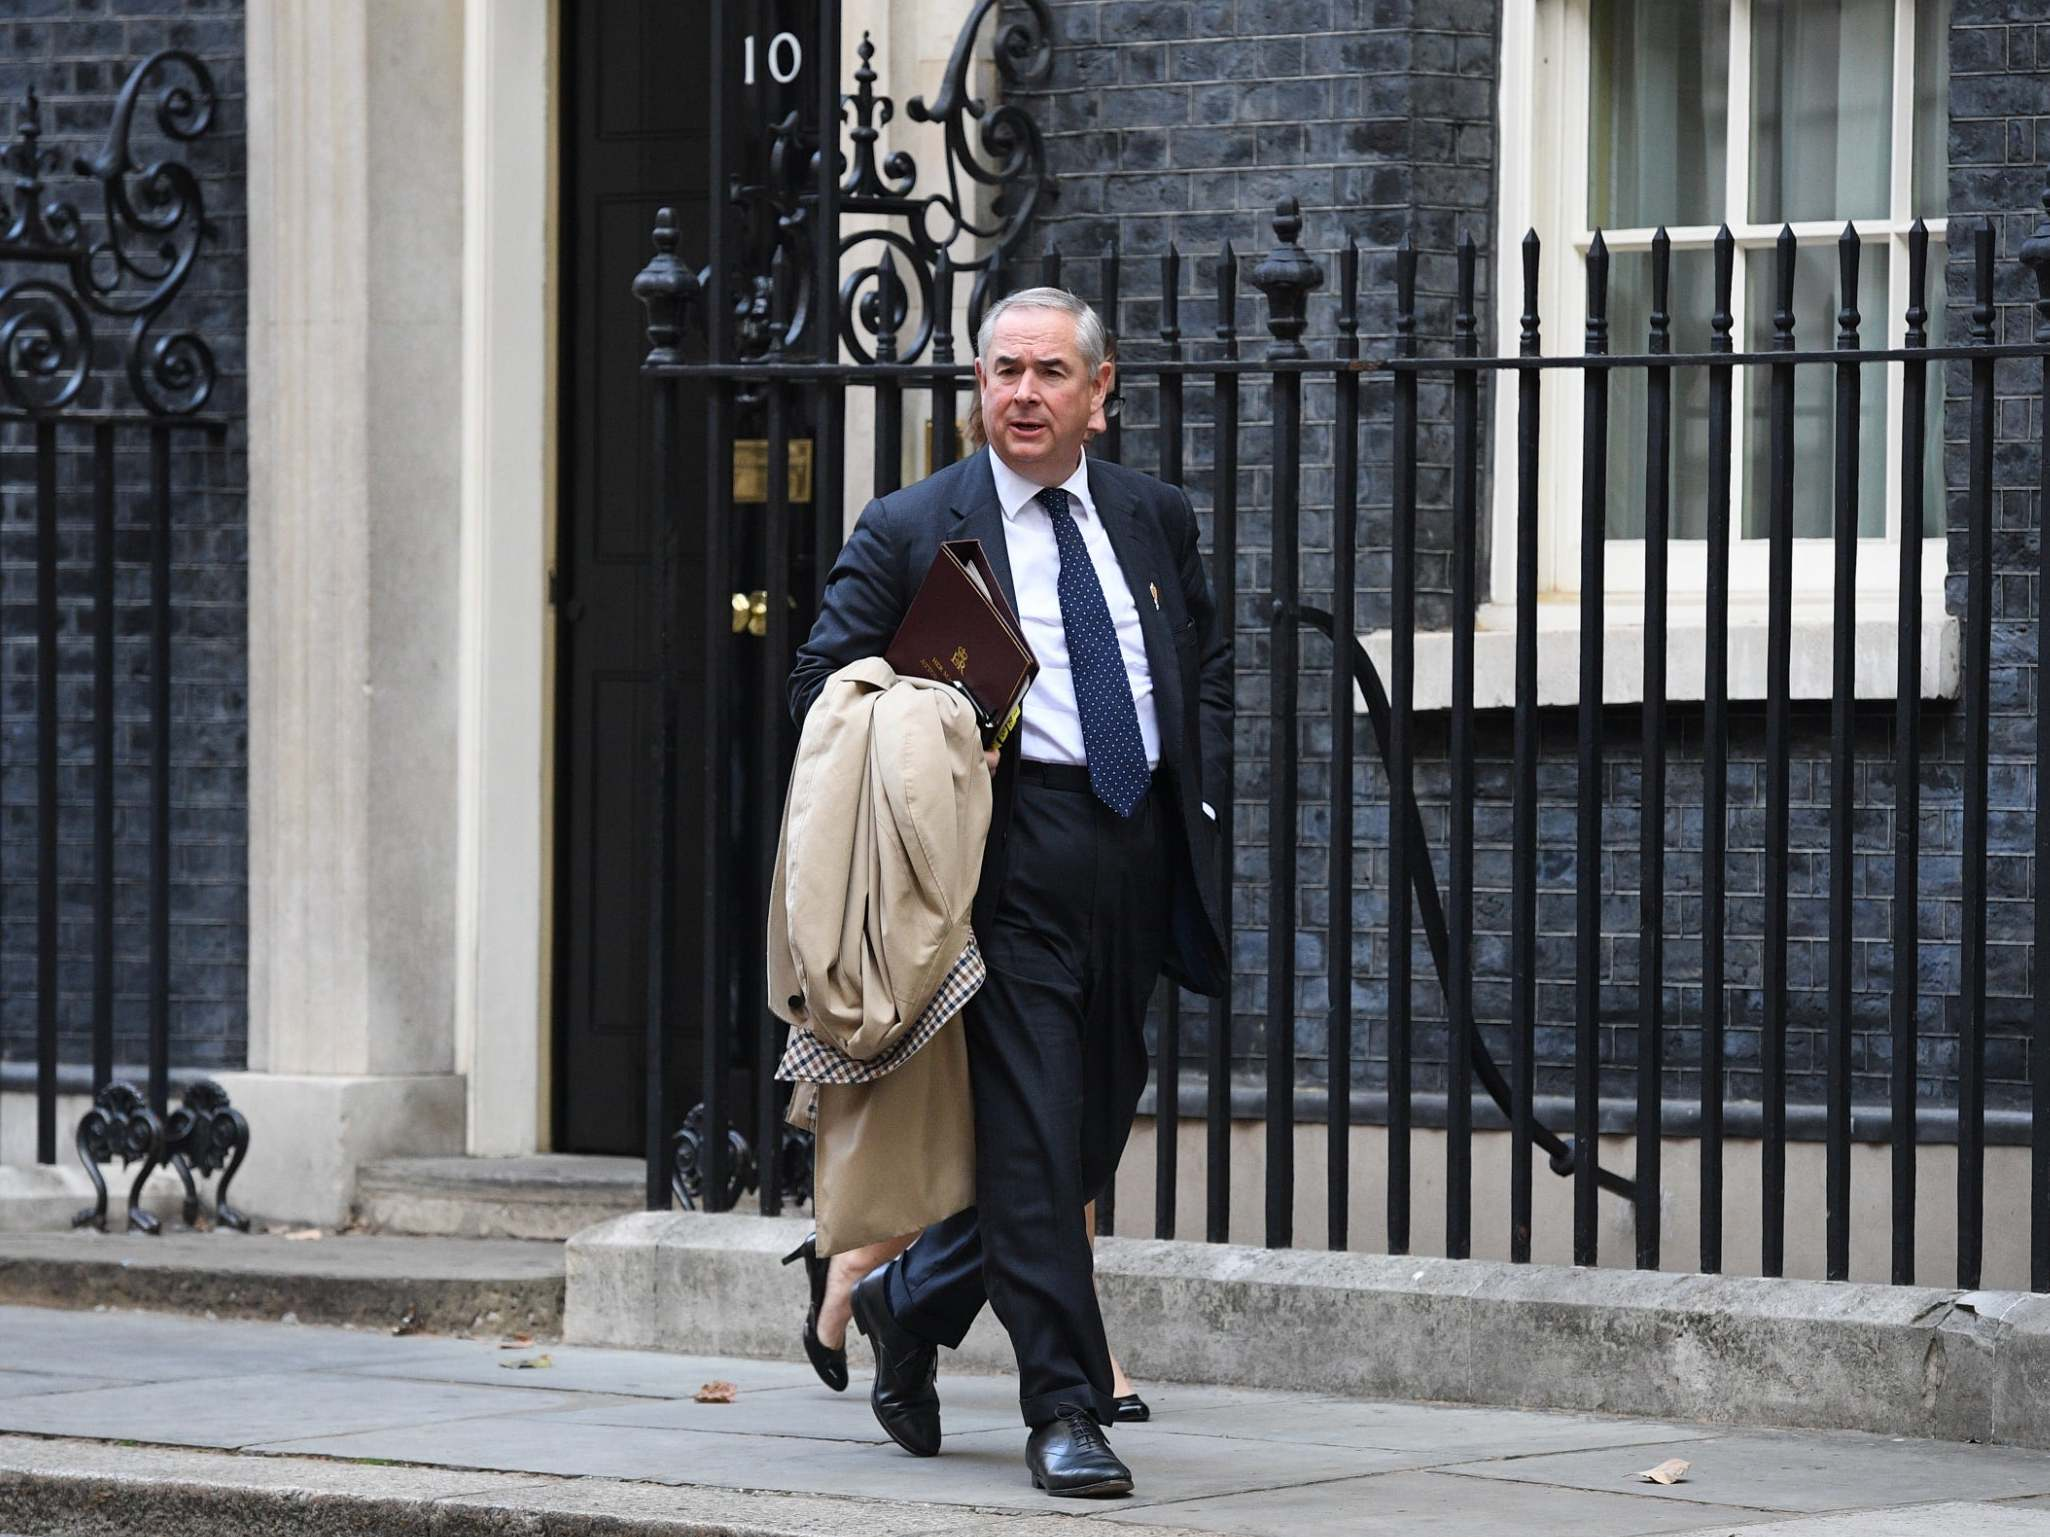 Geoffrey Cox's high amateur dramatics fail to cover up his towering professional failure